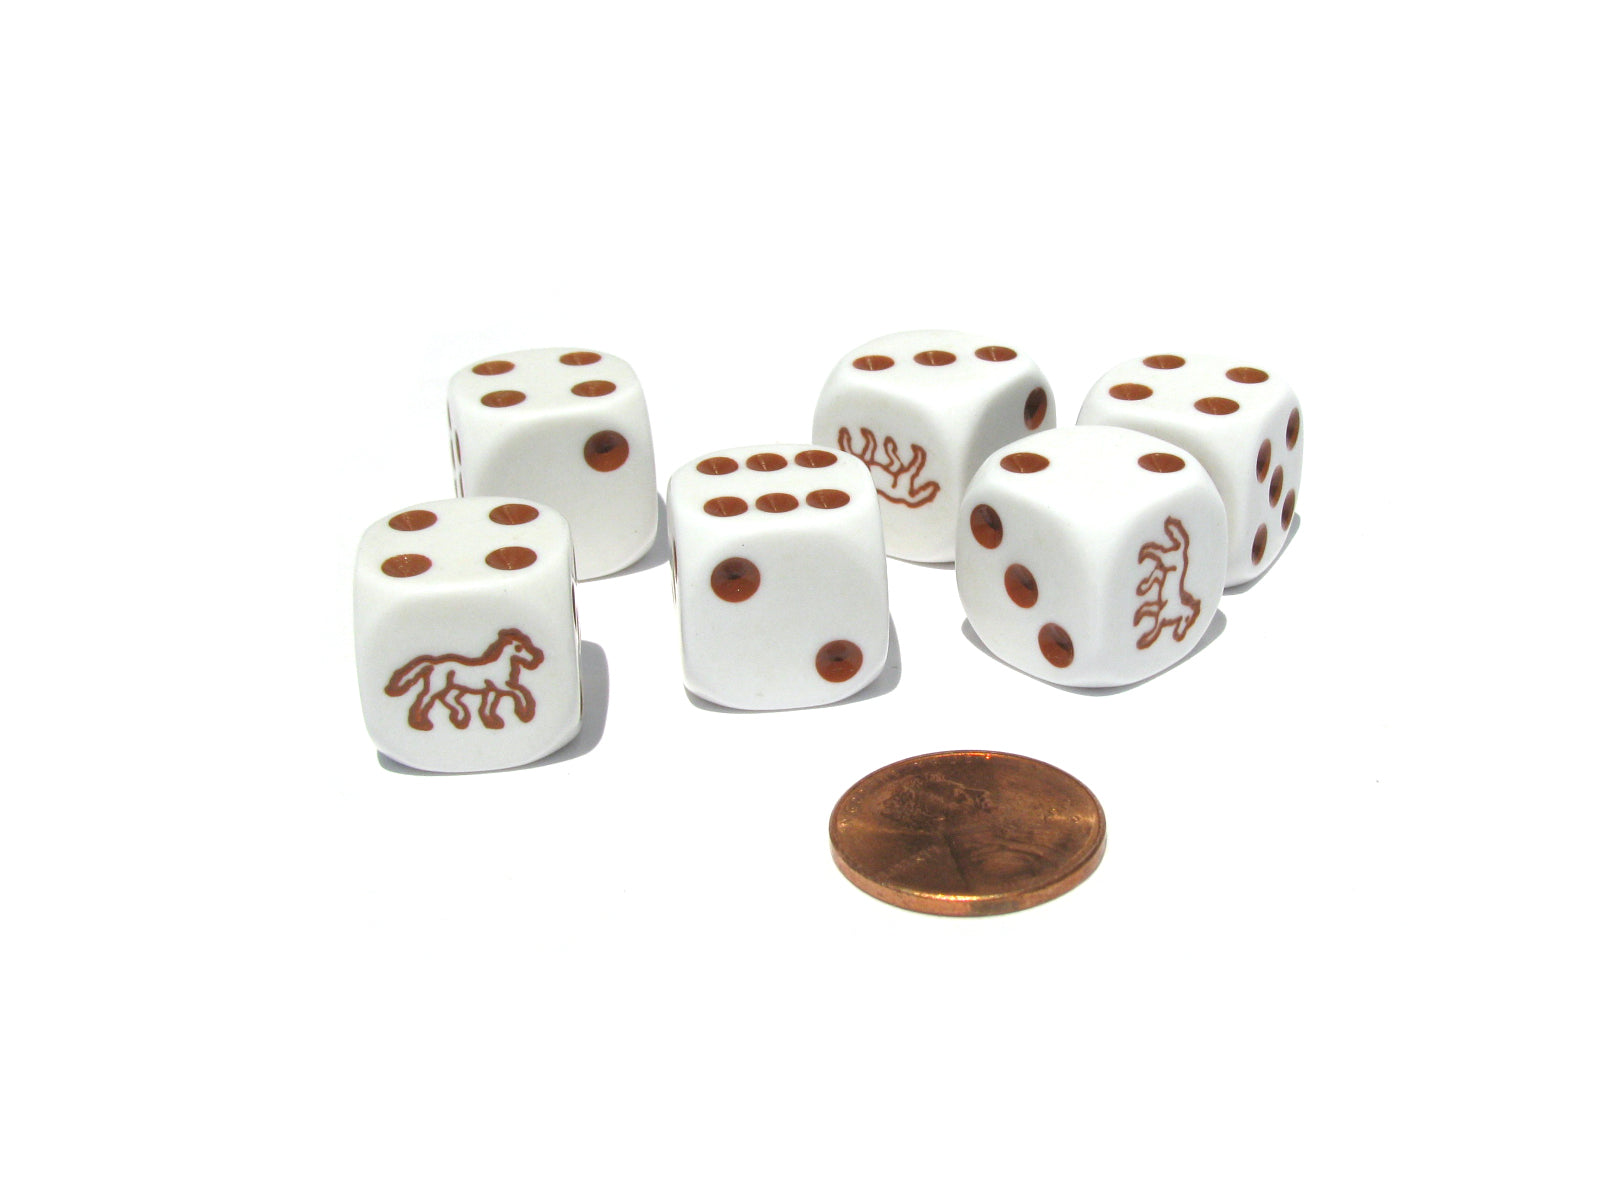 Set of 6 Horse 16mm D6 Round Edged Koplow Animal Dice - White with Brown Pips